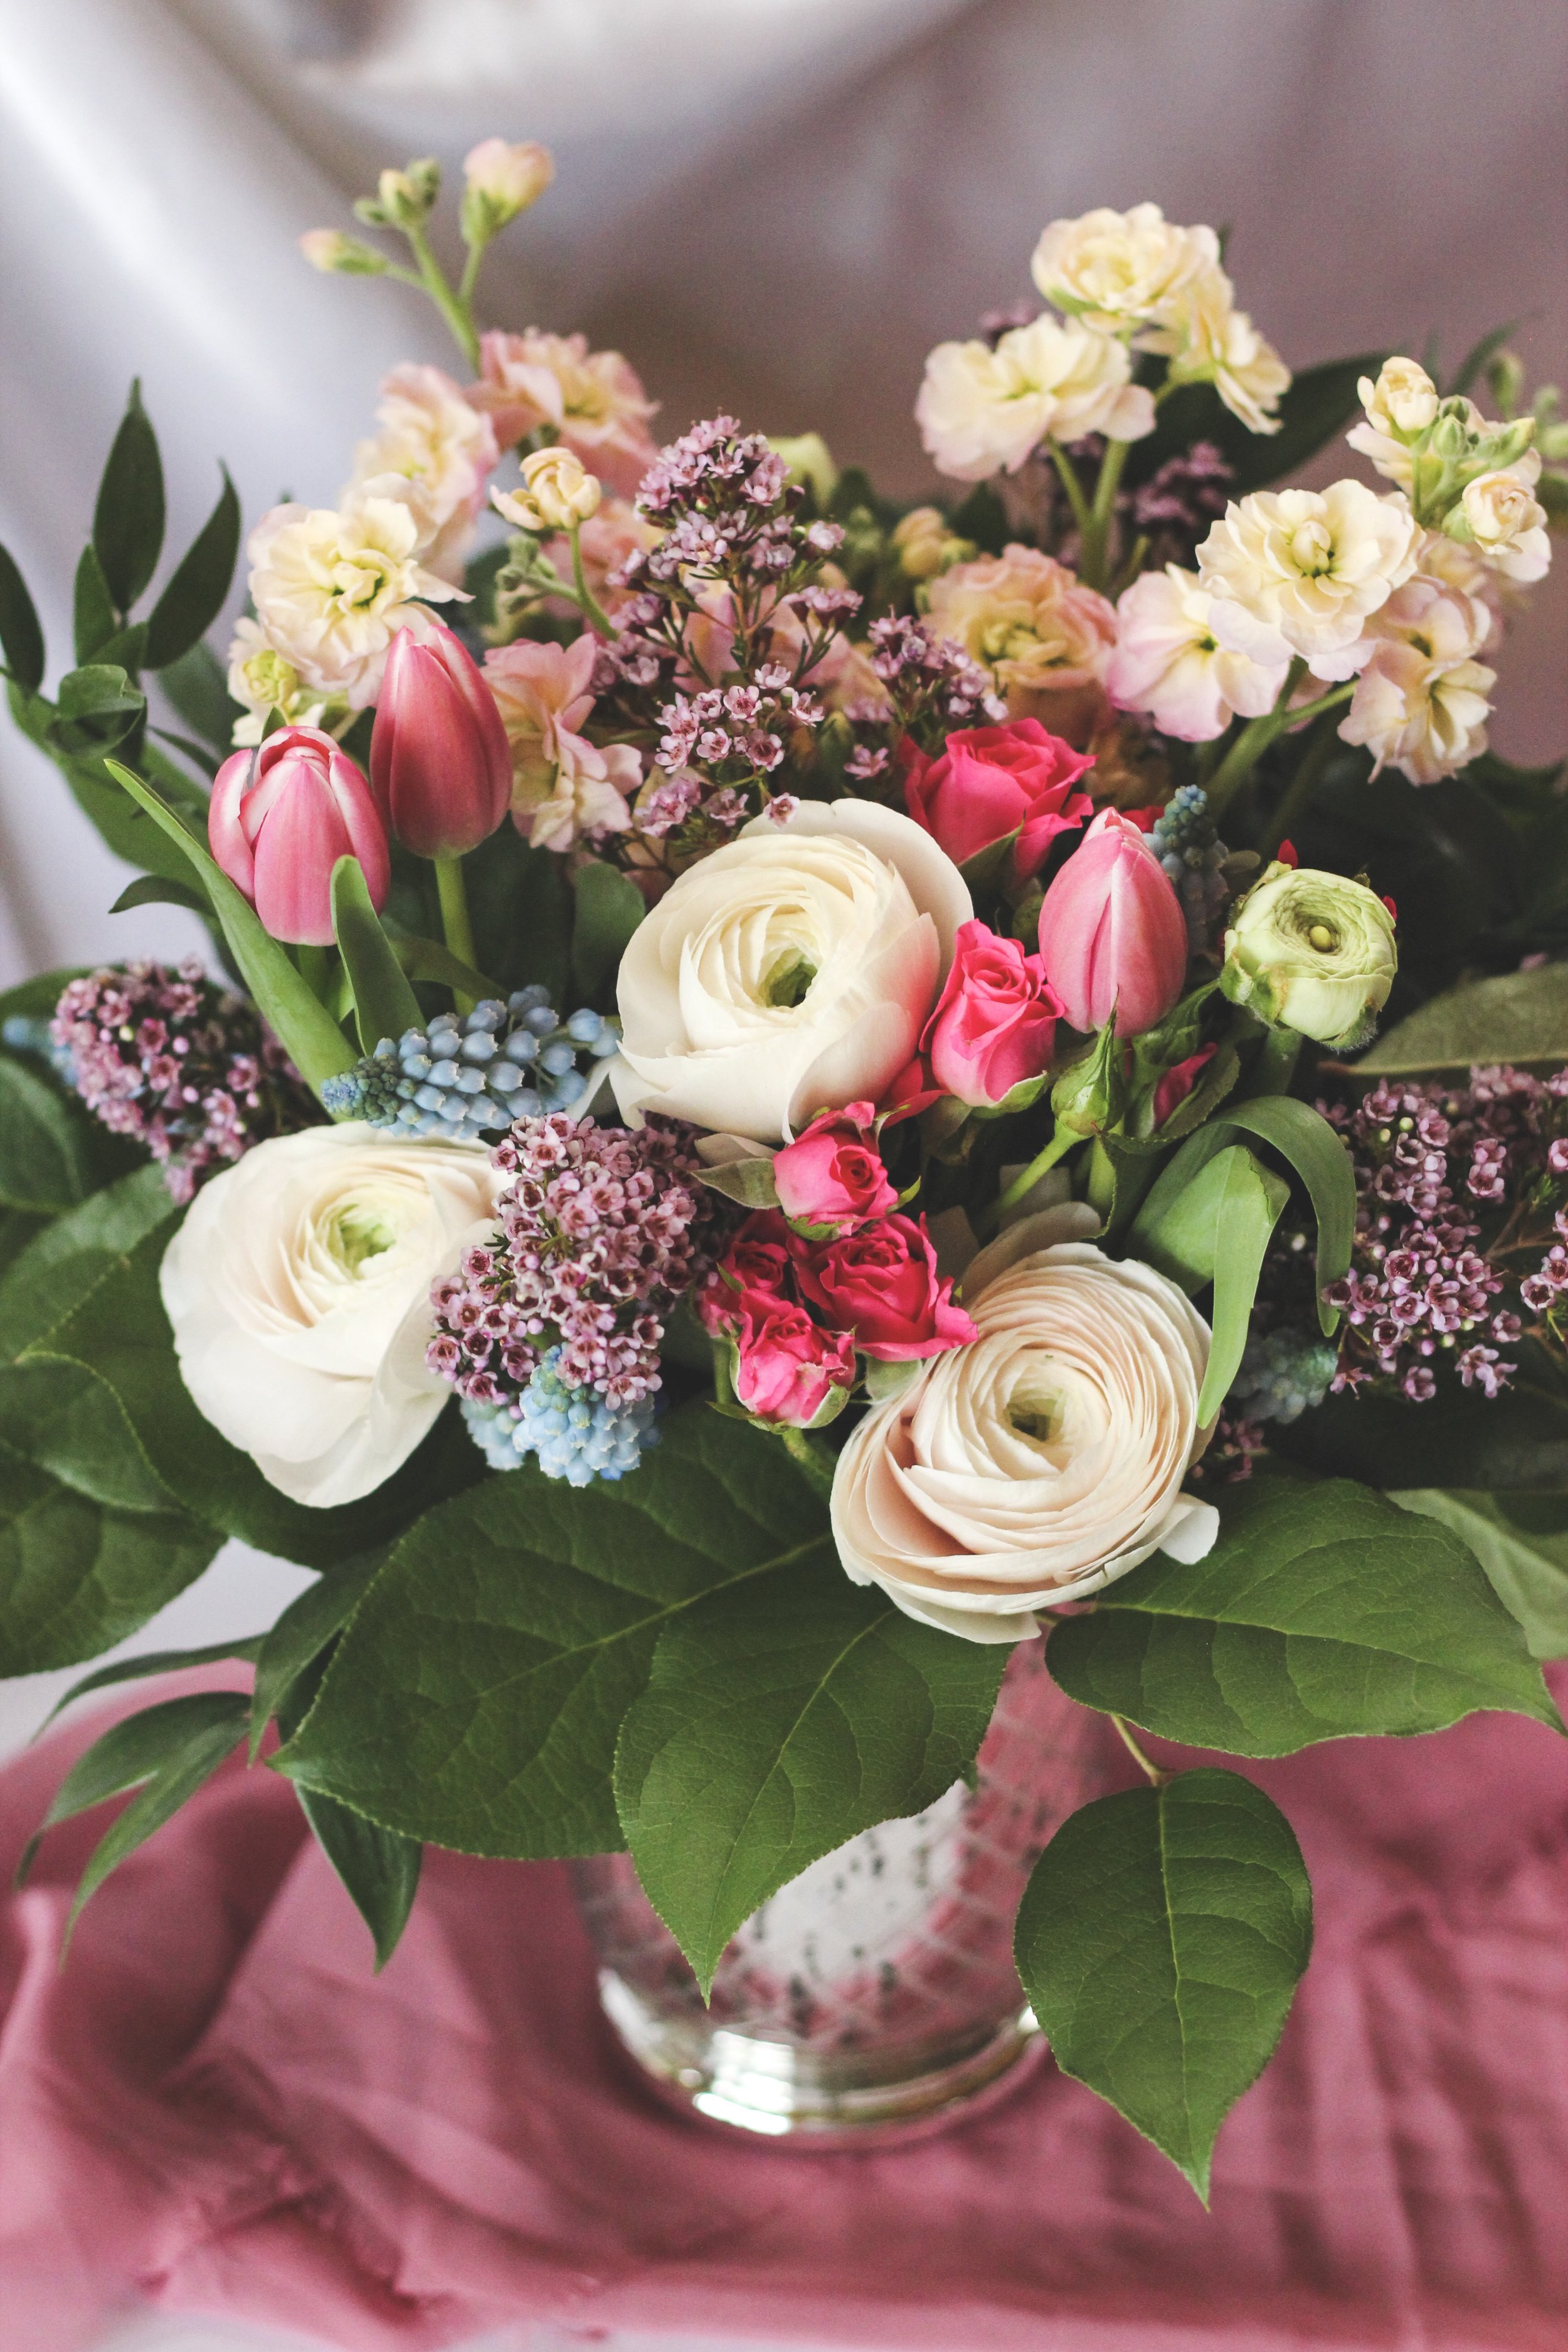 Mothers day white ranunculus pink tulip pink spray rose flower arrangement - Roots and Wildflowers